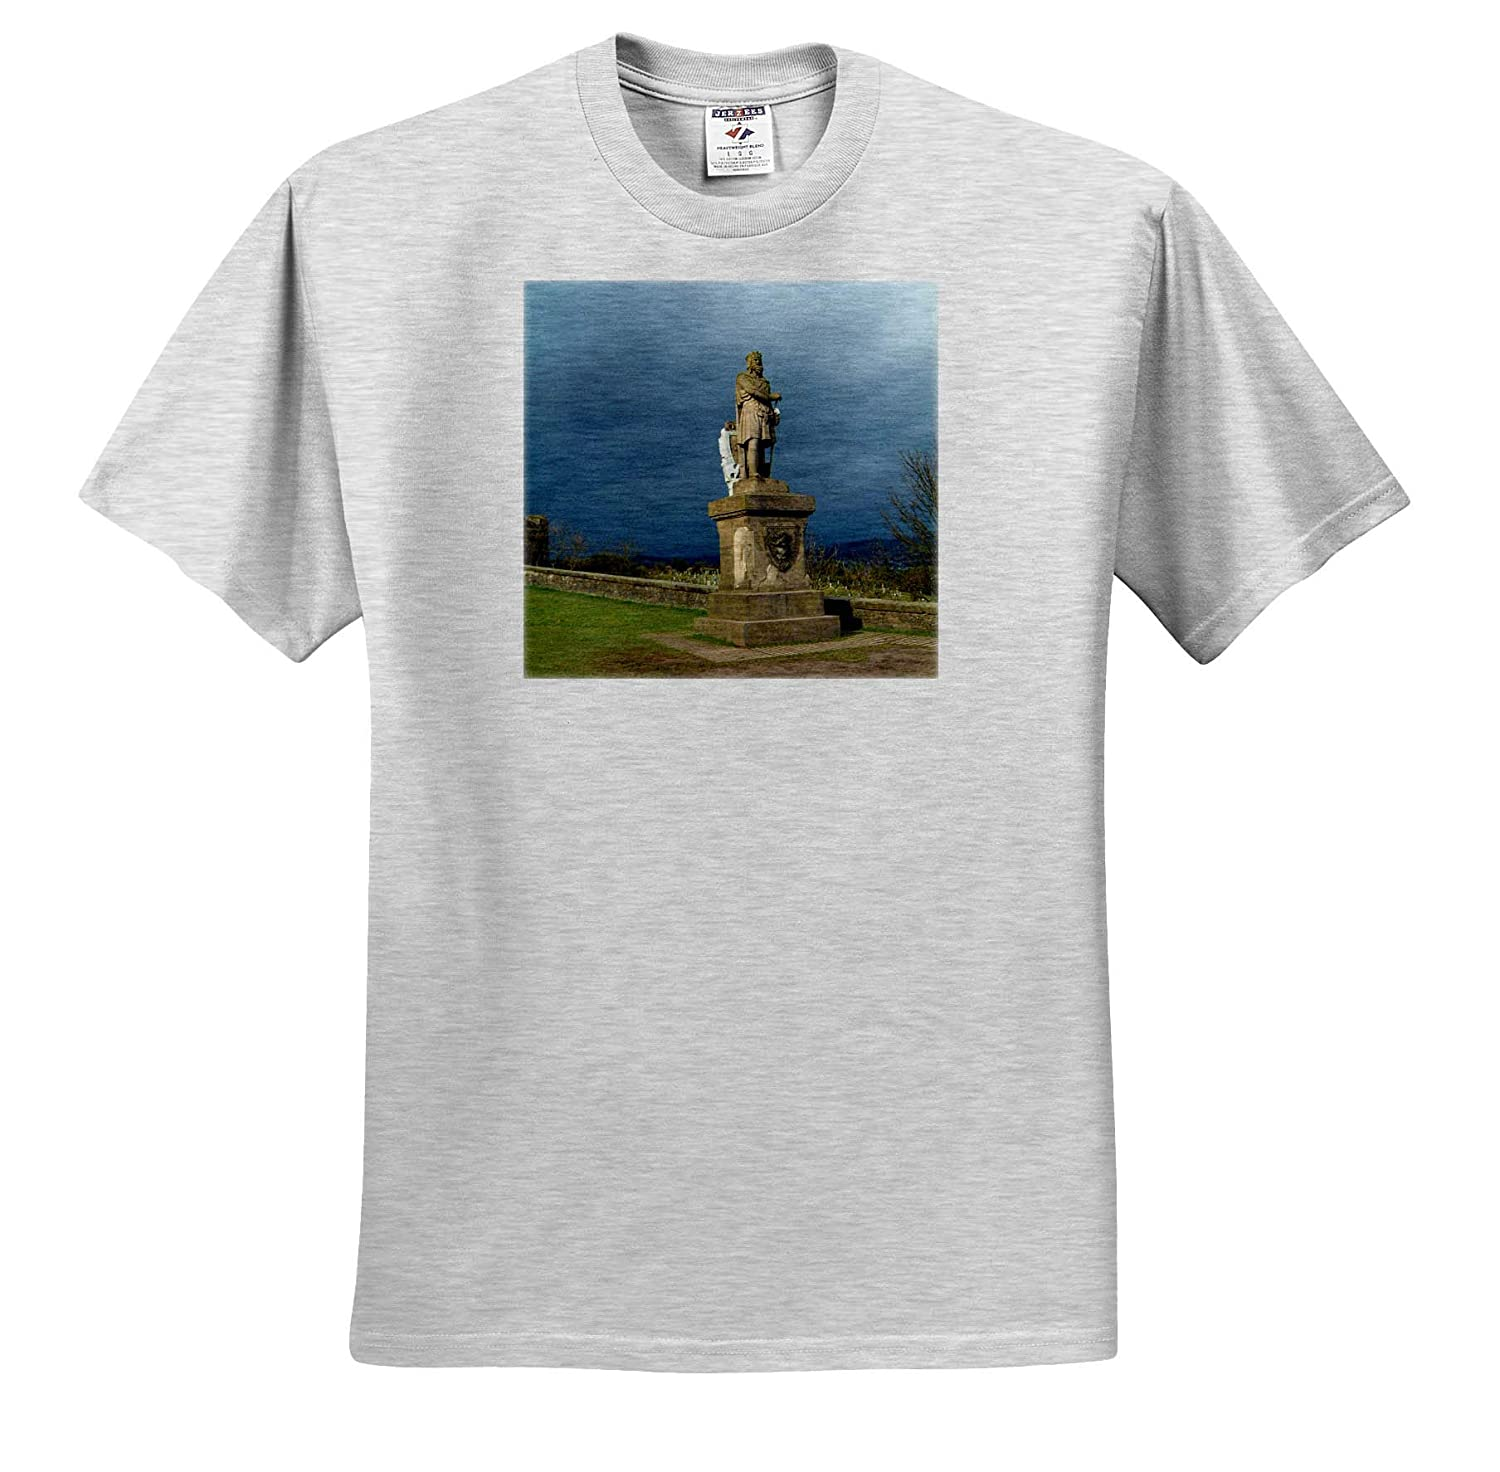 3dRose Jos Fauxtographee T-Shirts Scotland Robert The Bruce Rober The Bruce on The gorunds of The Stirling Castle